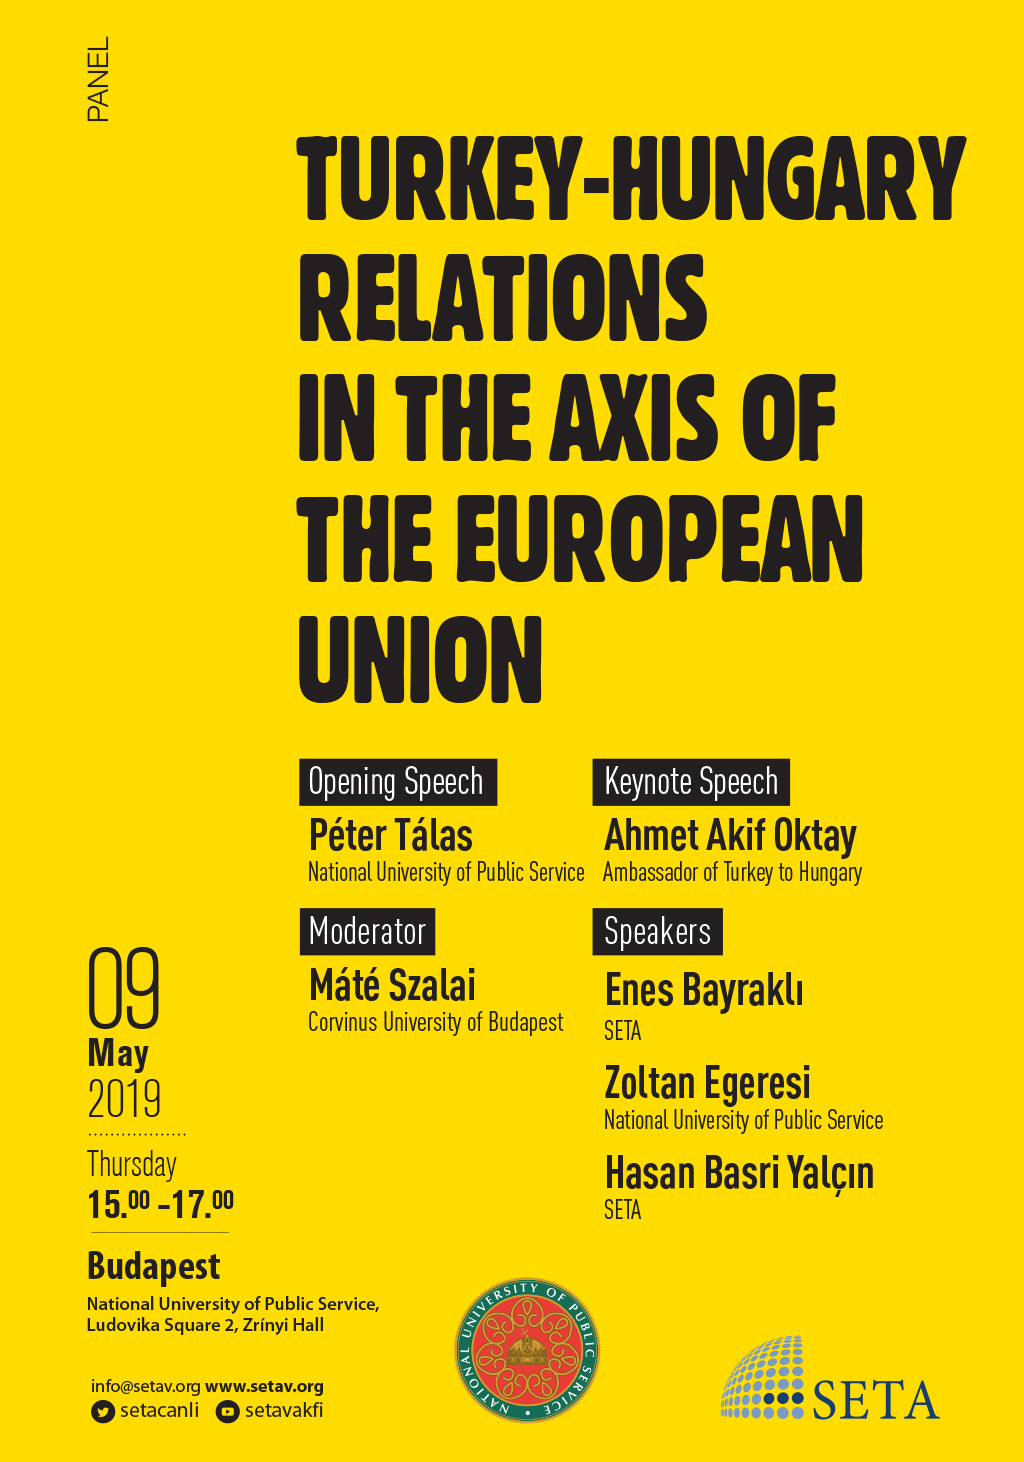 Panel: Turkey-Hungary Relations in the Axis of the European Union